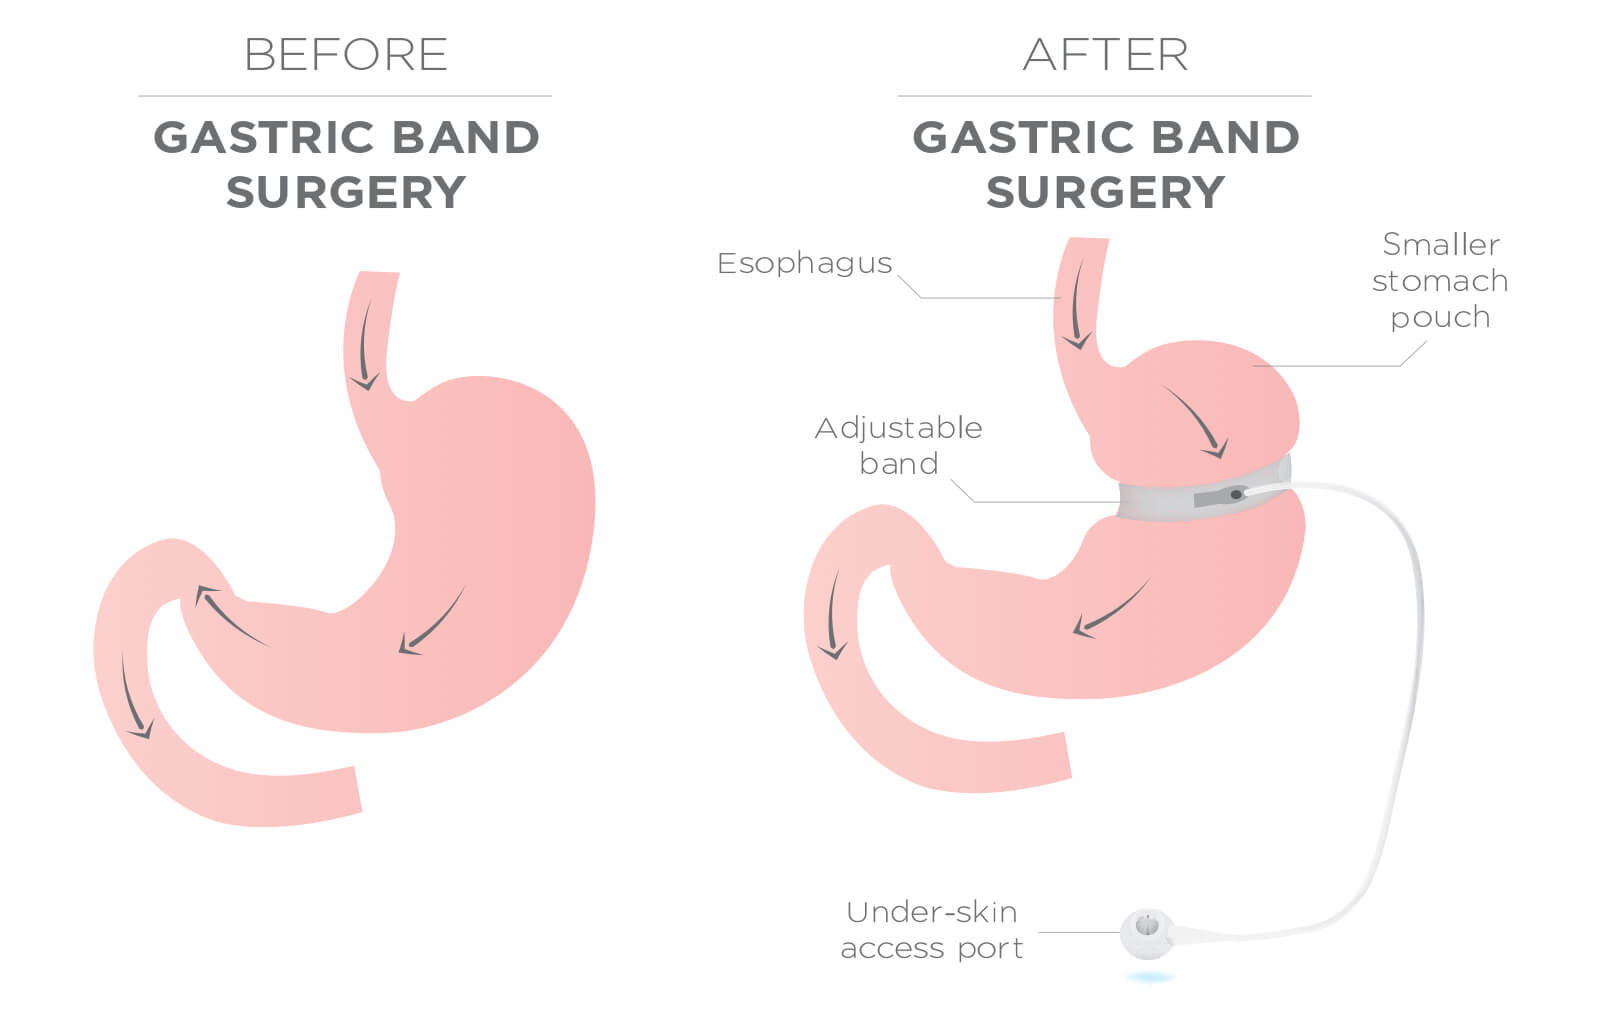 gastric band not functioning